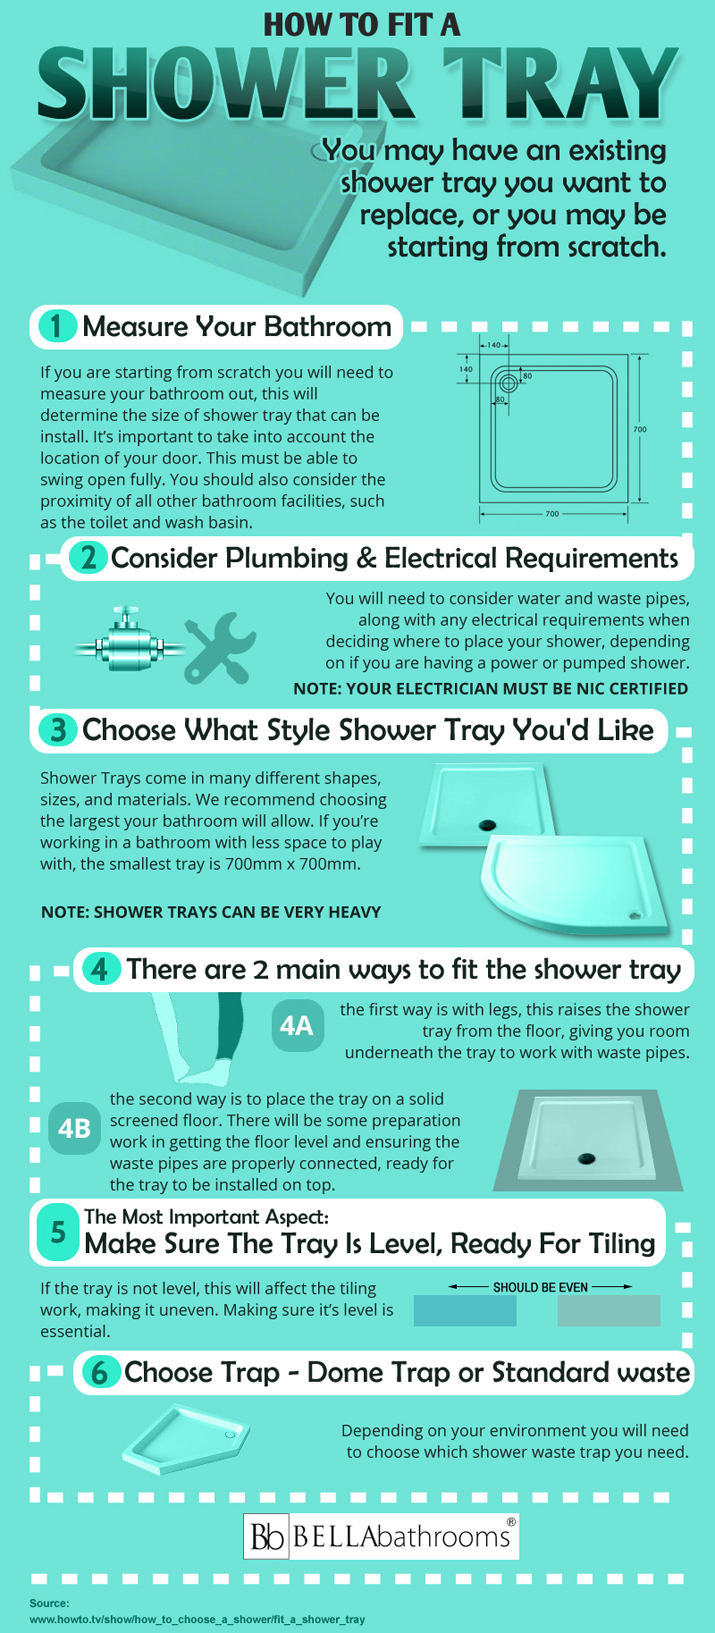 How To Fit A Shower Tray